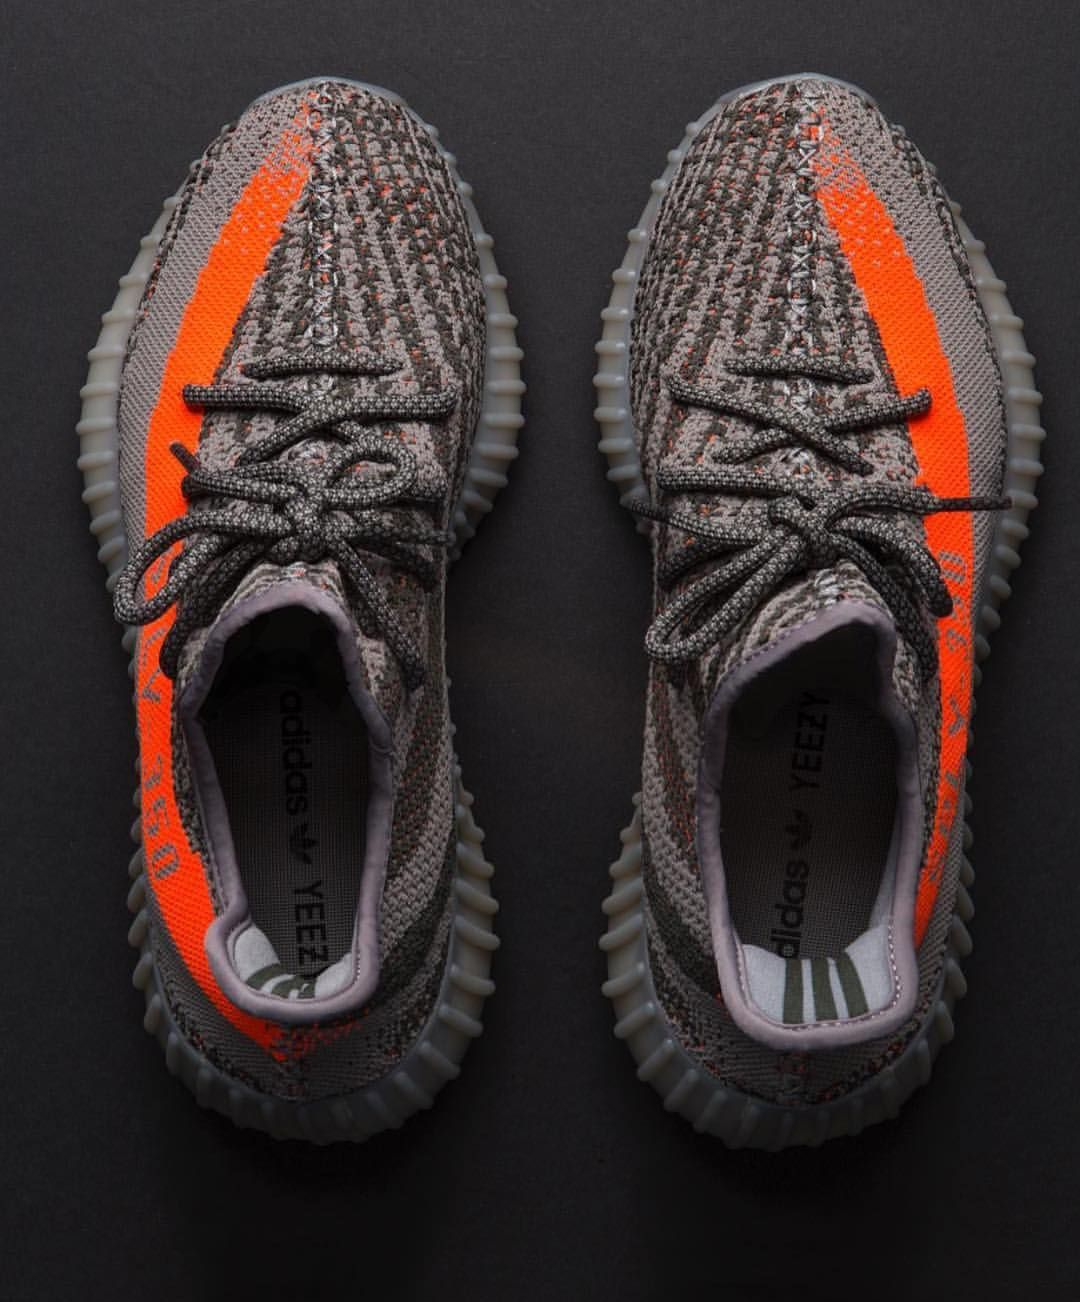 nike shoes for men 2017 price in india adidas yeezy boost 350 beluga 20